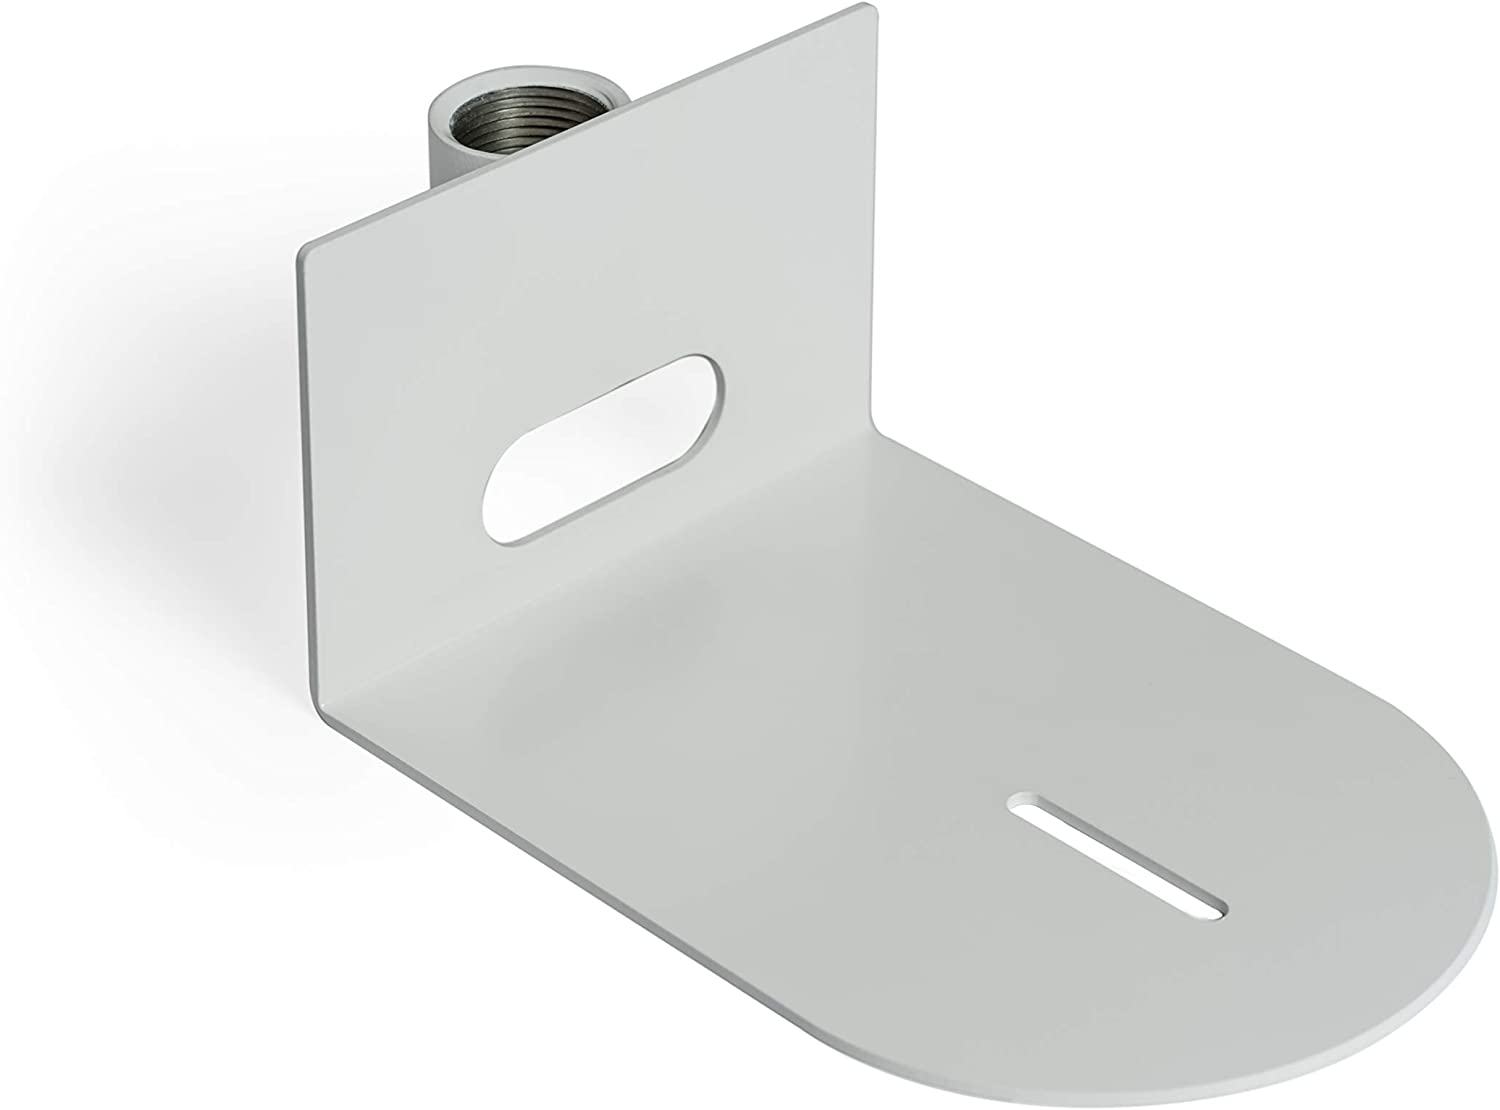 AV Brackets PTZ Camera Ceiling Bracket Mounting 2021 new Max 77% OFF wit Compatible